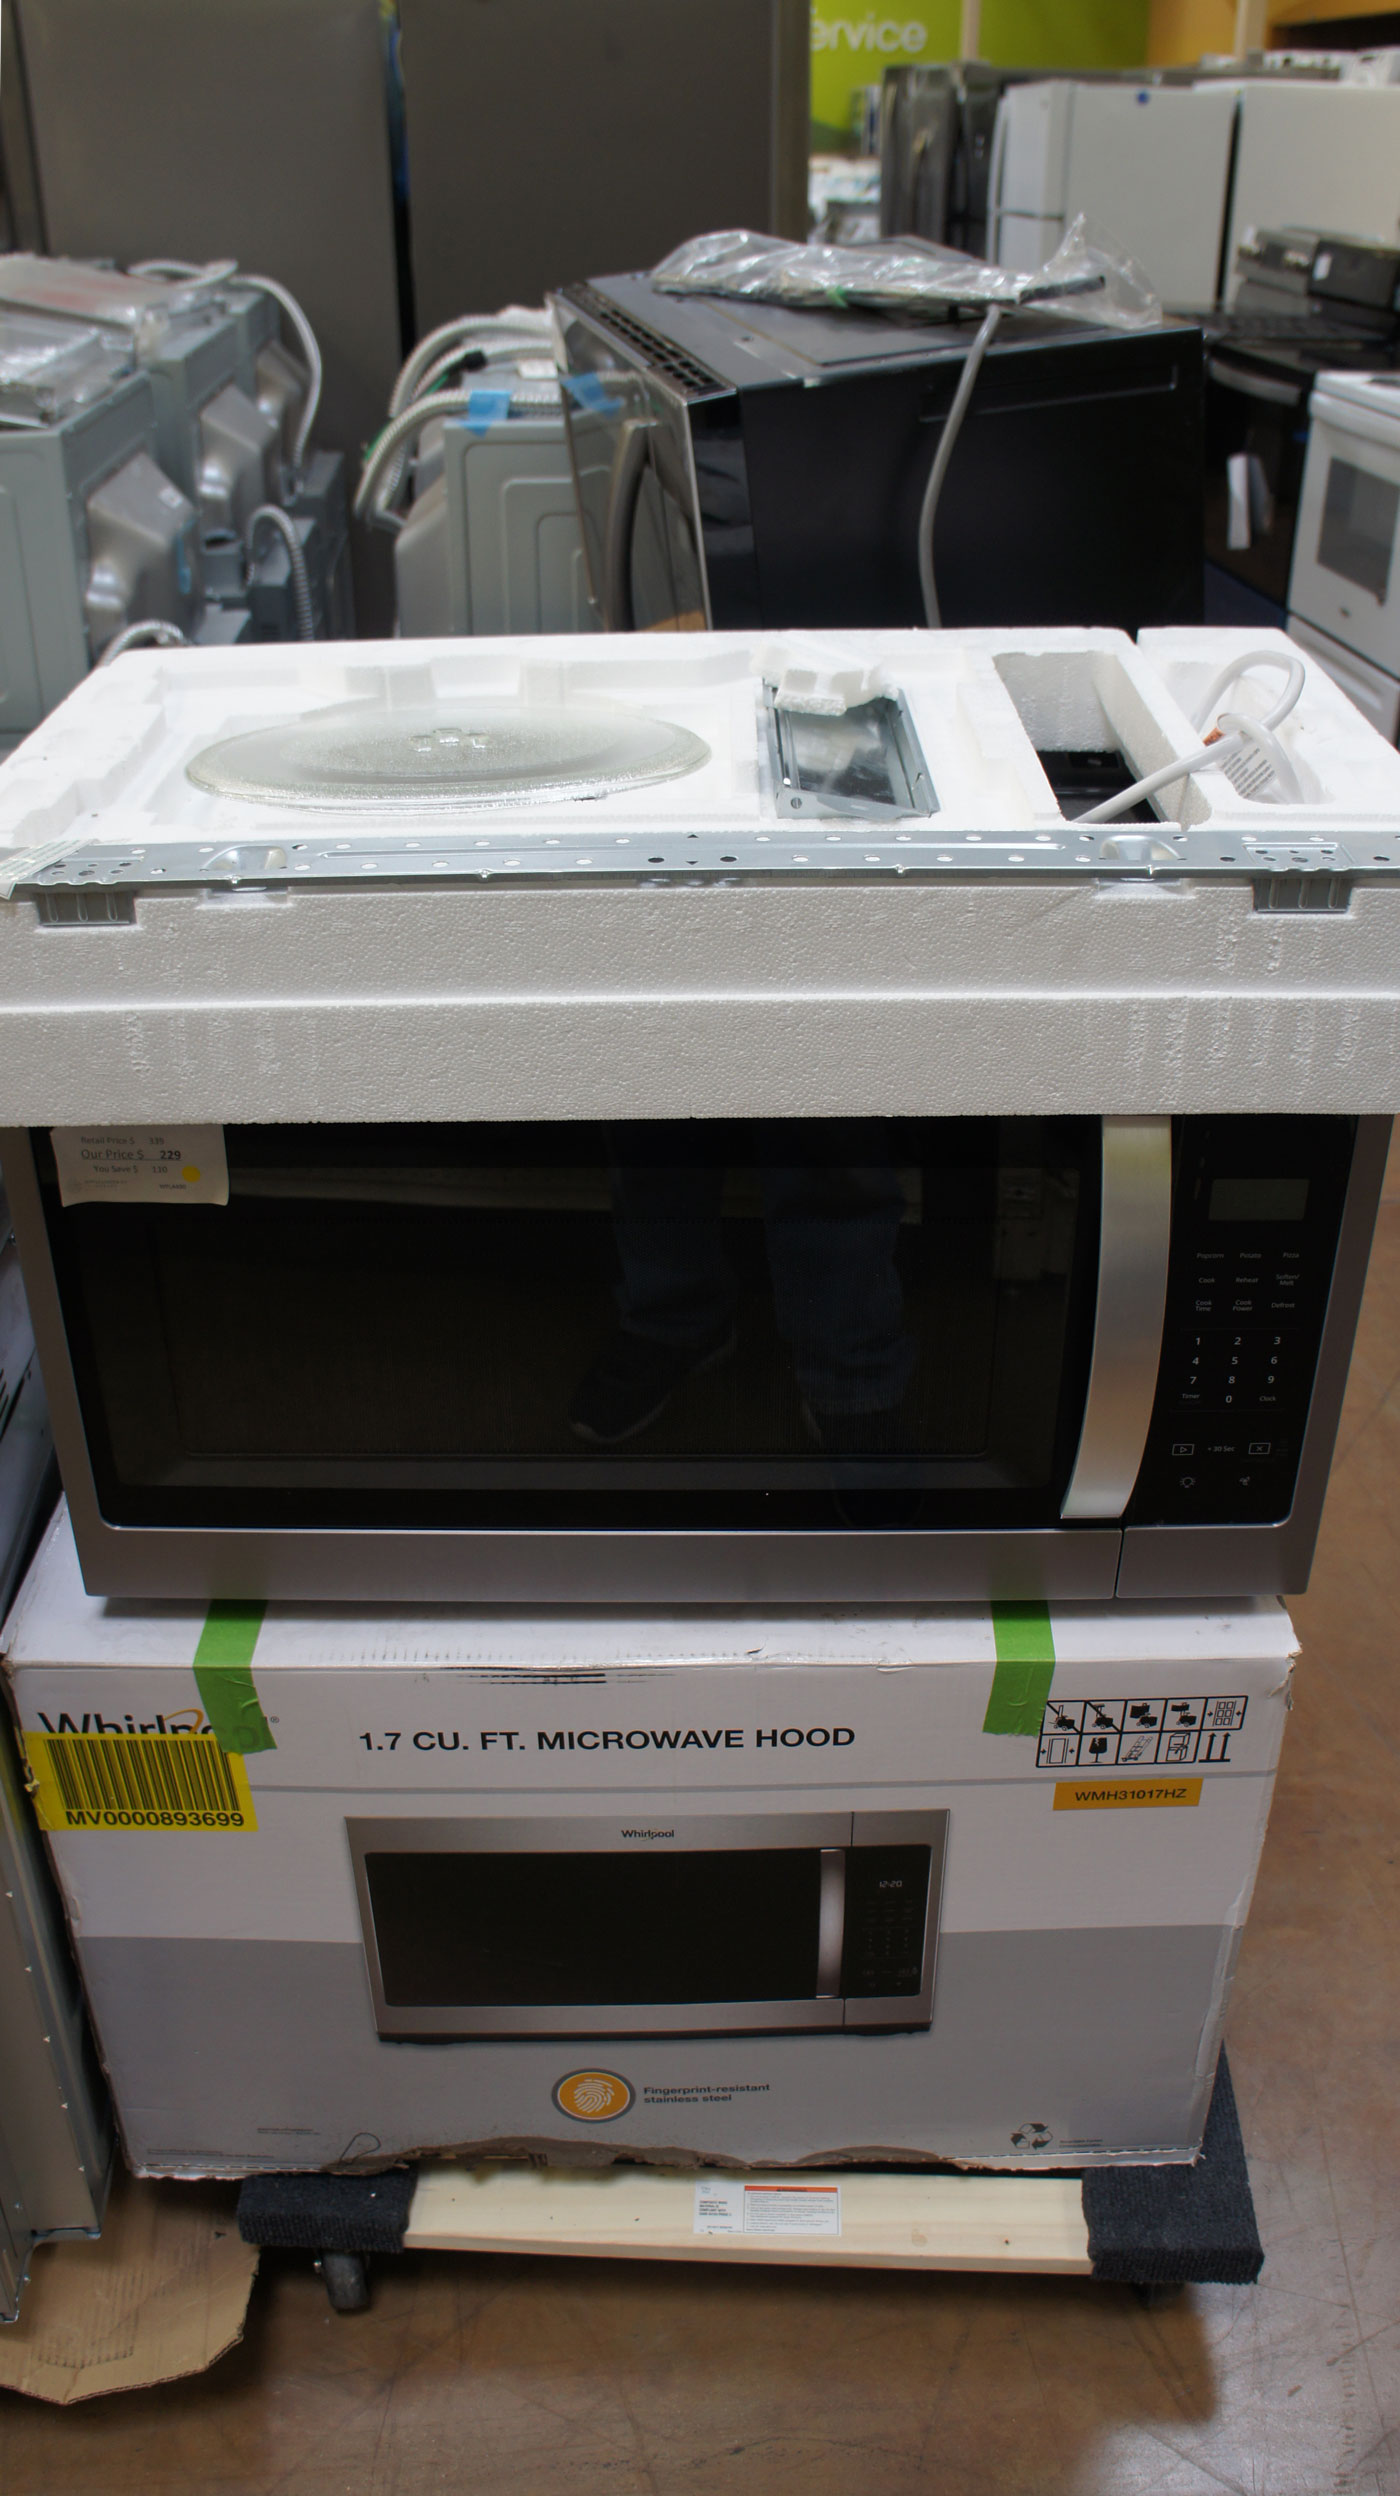 1.7 cu.ft. Whirlpool WMH31017HZ Over-The-Range Microwave Oven